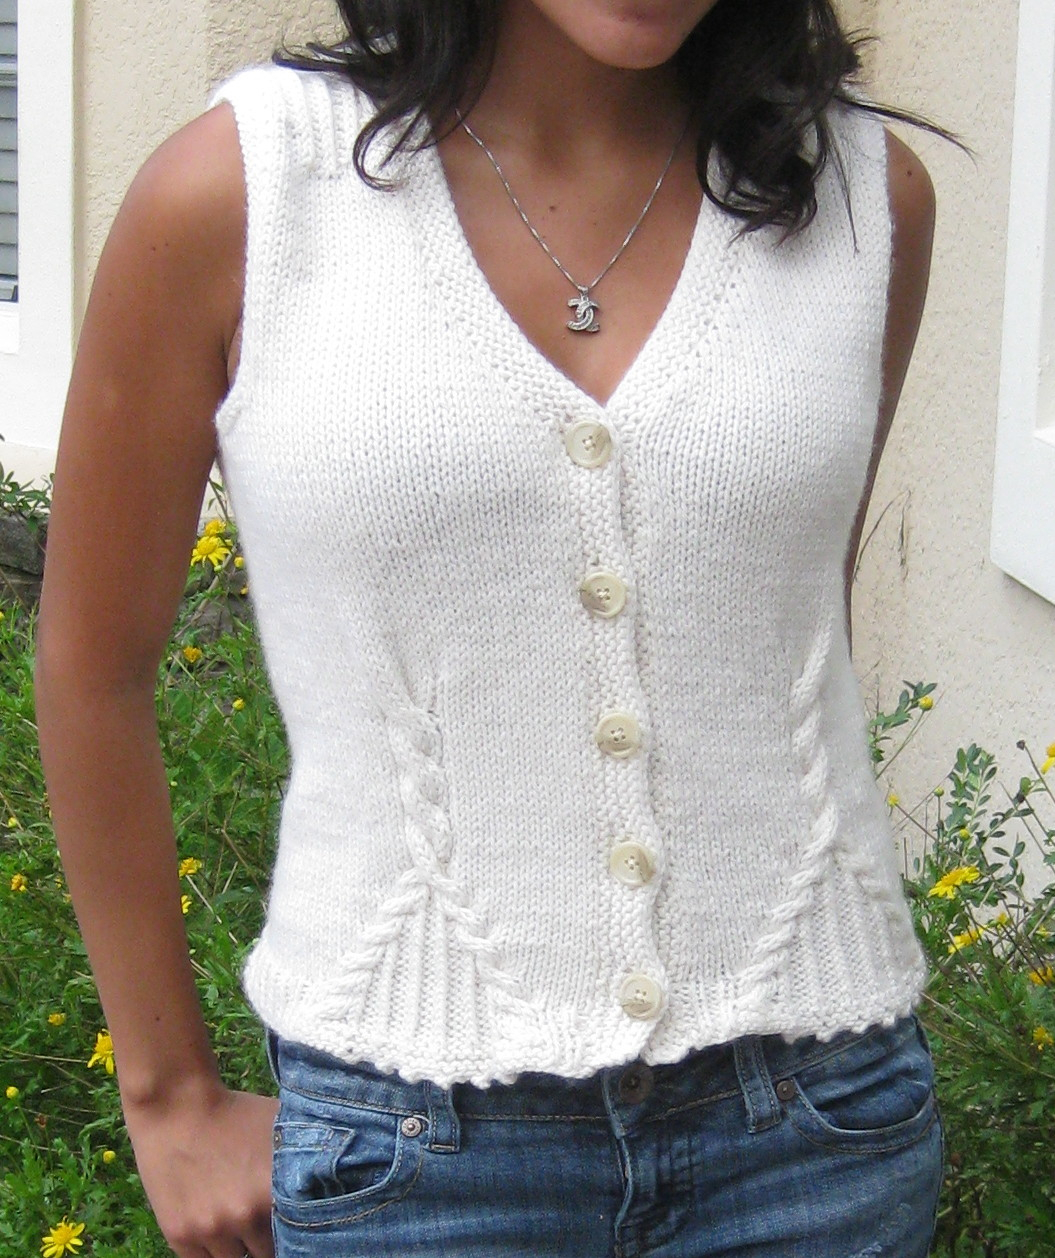 Knitted Jacket Patterns Free Knitting Vests Patterns Browse Patterns